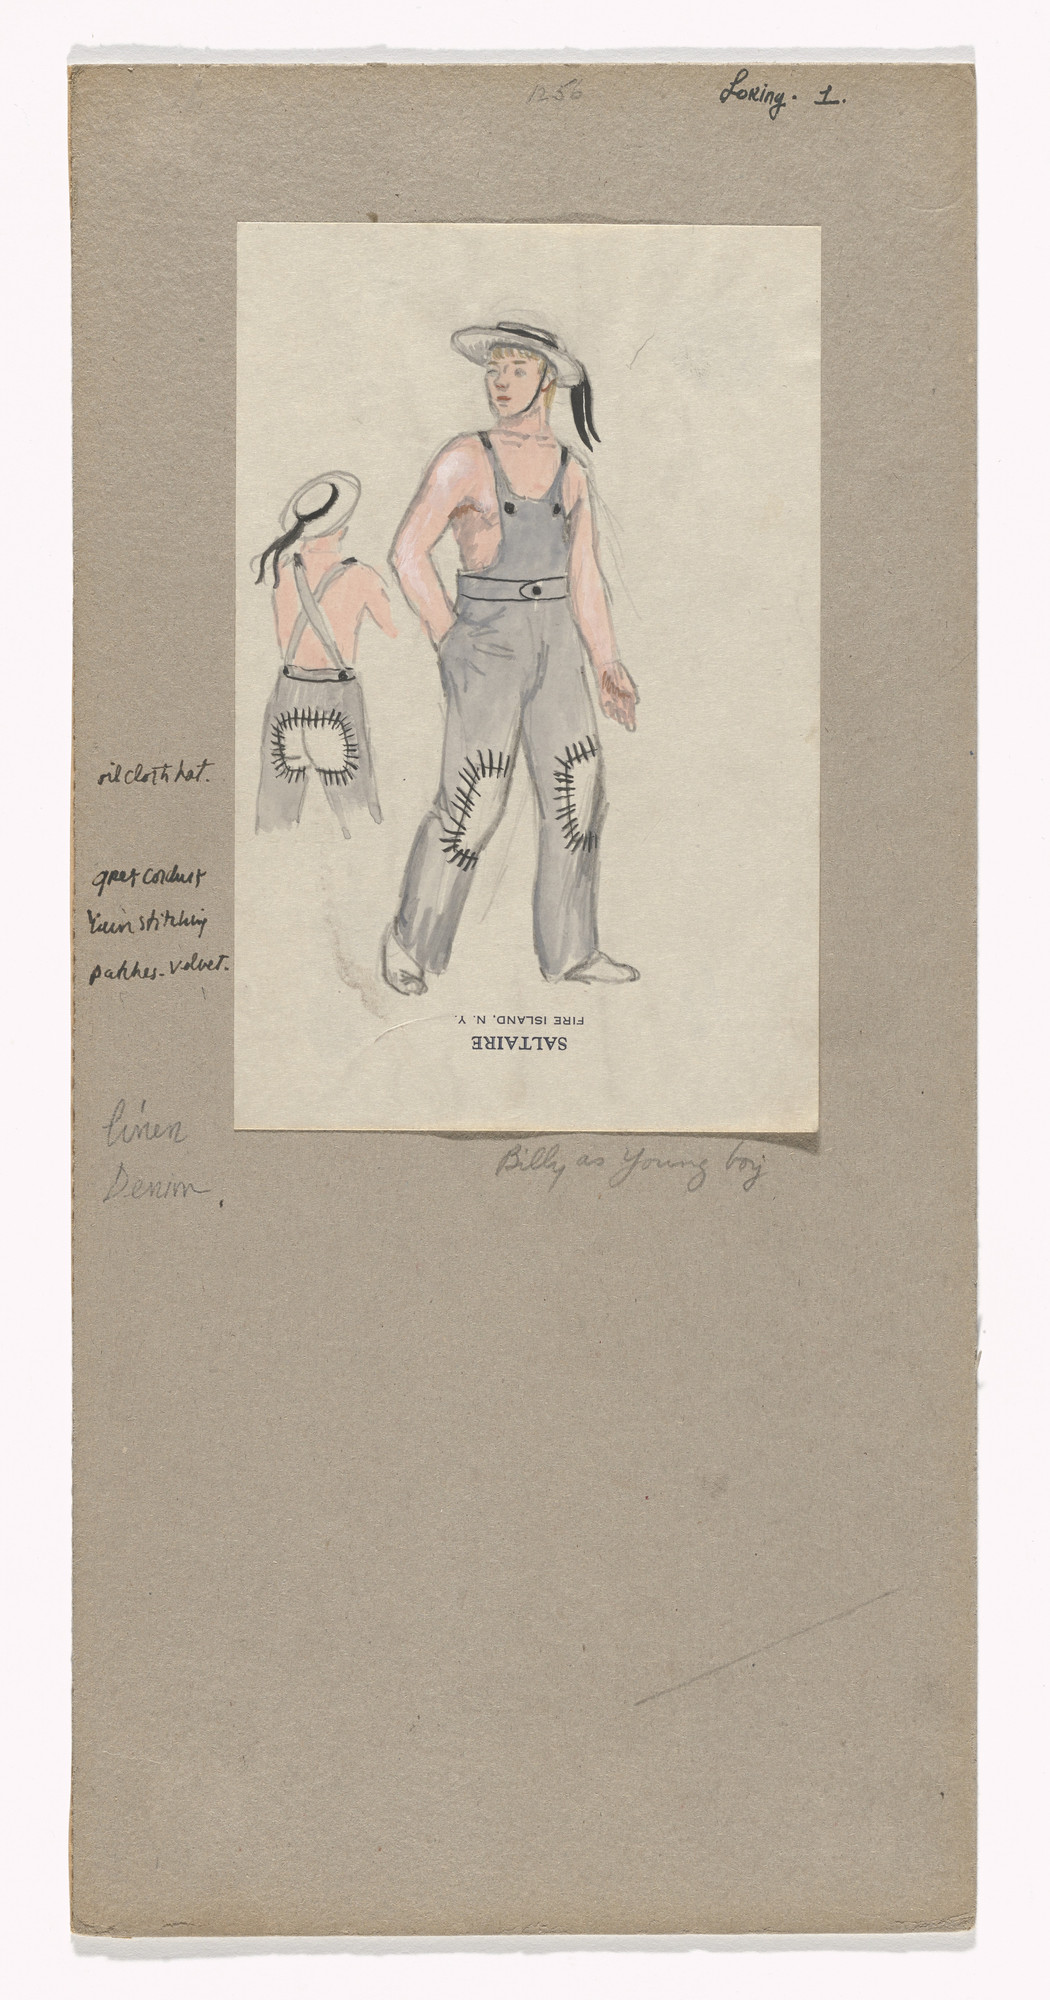 Jared French. Billy as Young Boy. Costume design for the ballet Billy the Kid. 1938